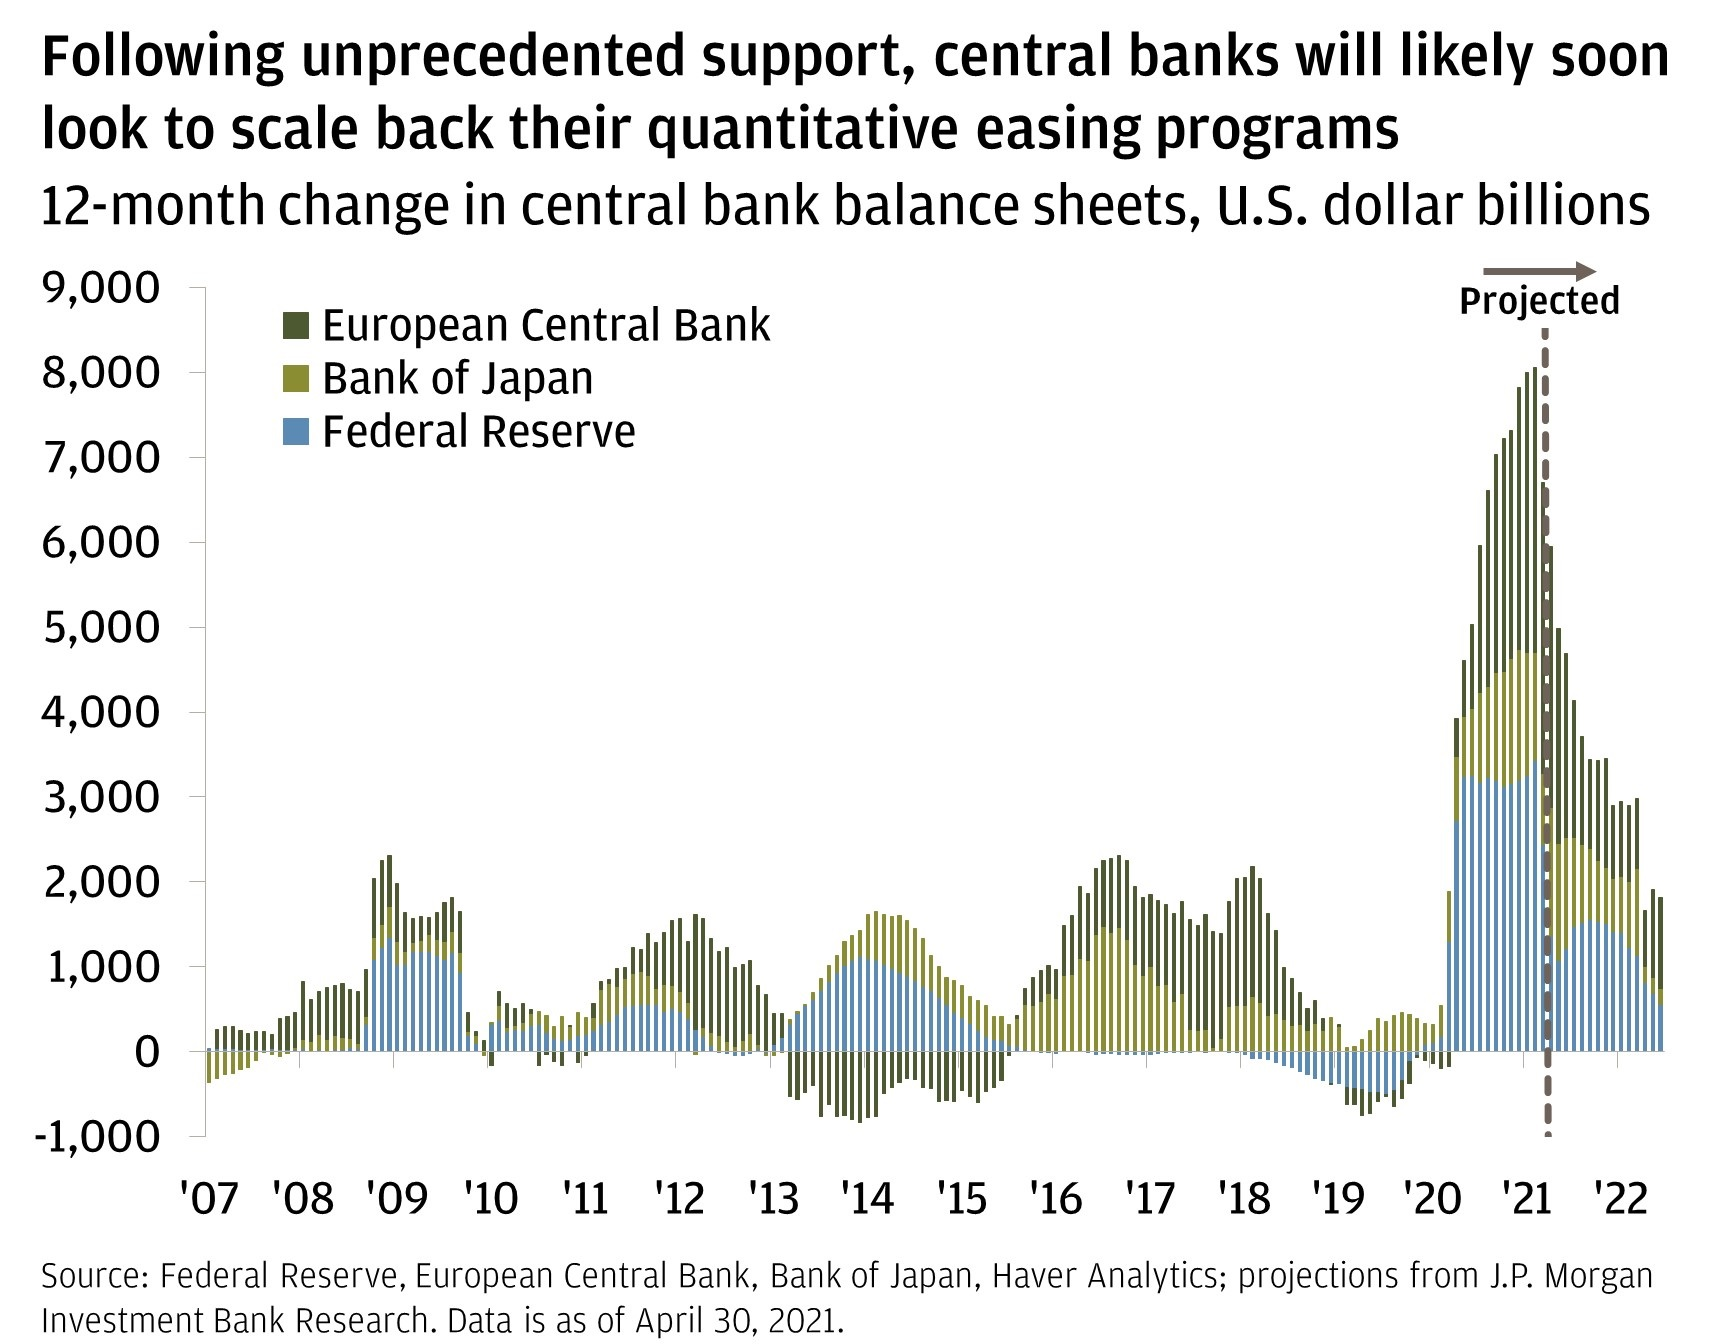 Chart 3: Following unprecendented support, central banks will likely soon look to scale back their quantitative easing programs.